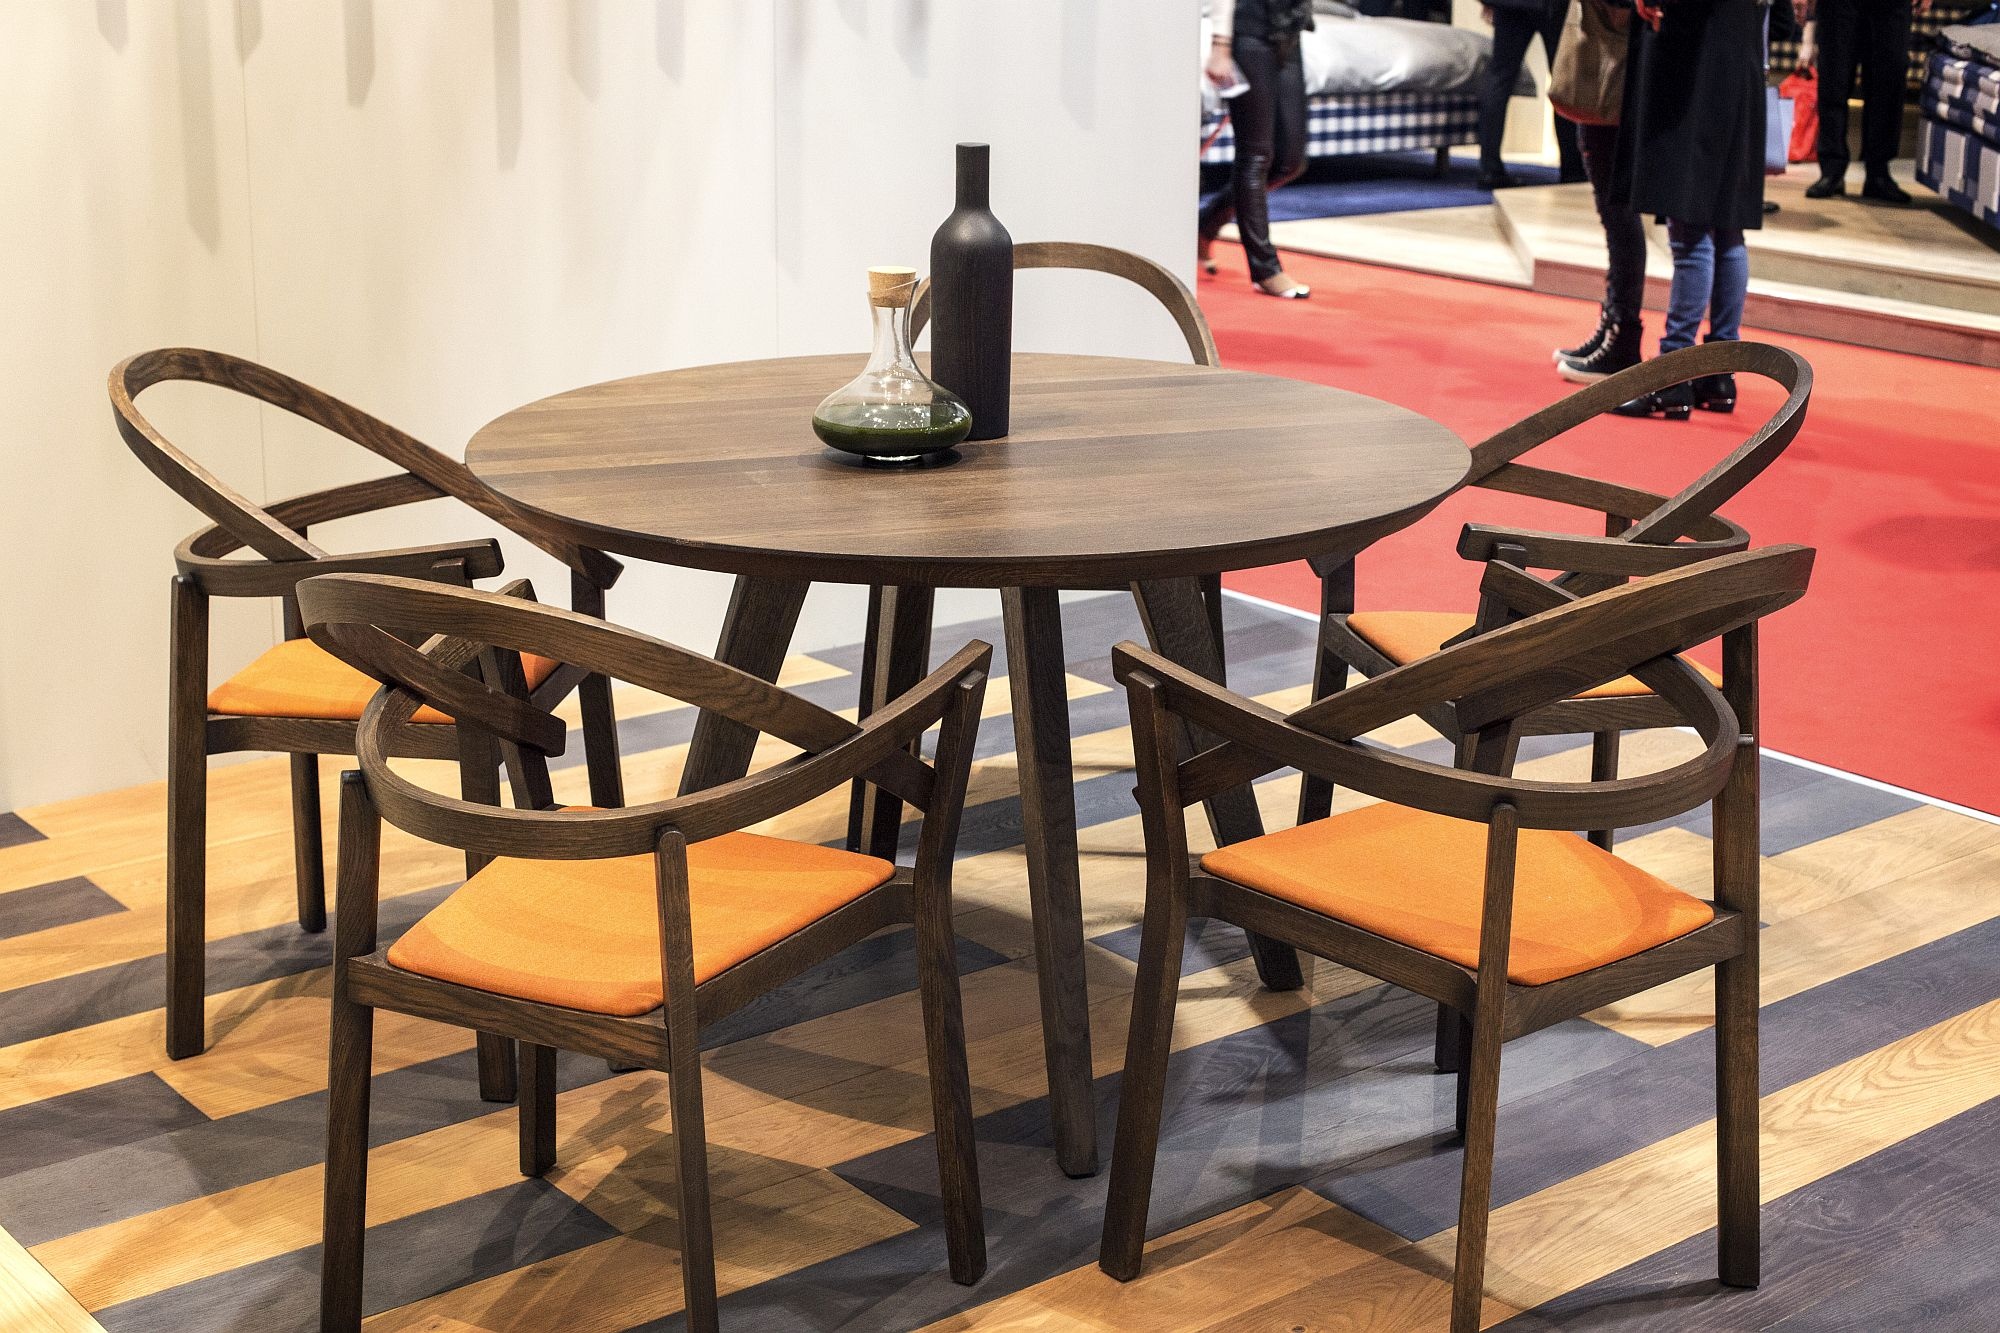 Wood combined with orange hue to create lovely dining table chairs